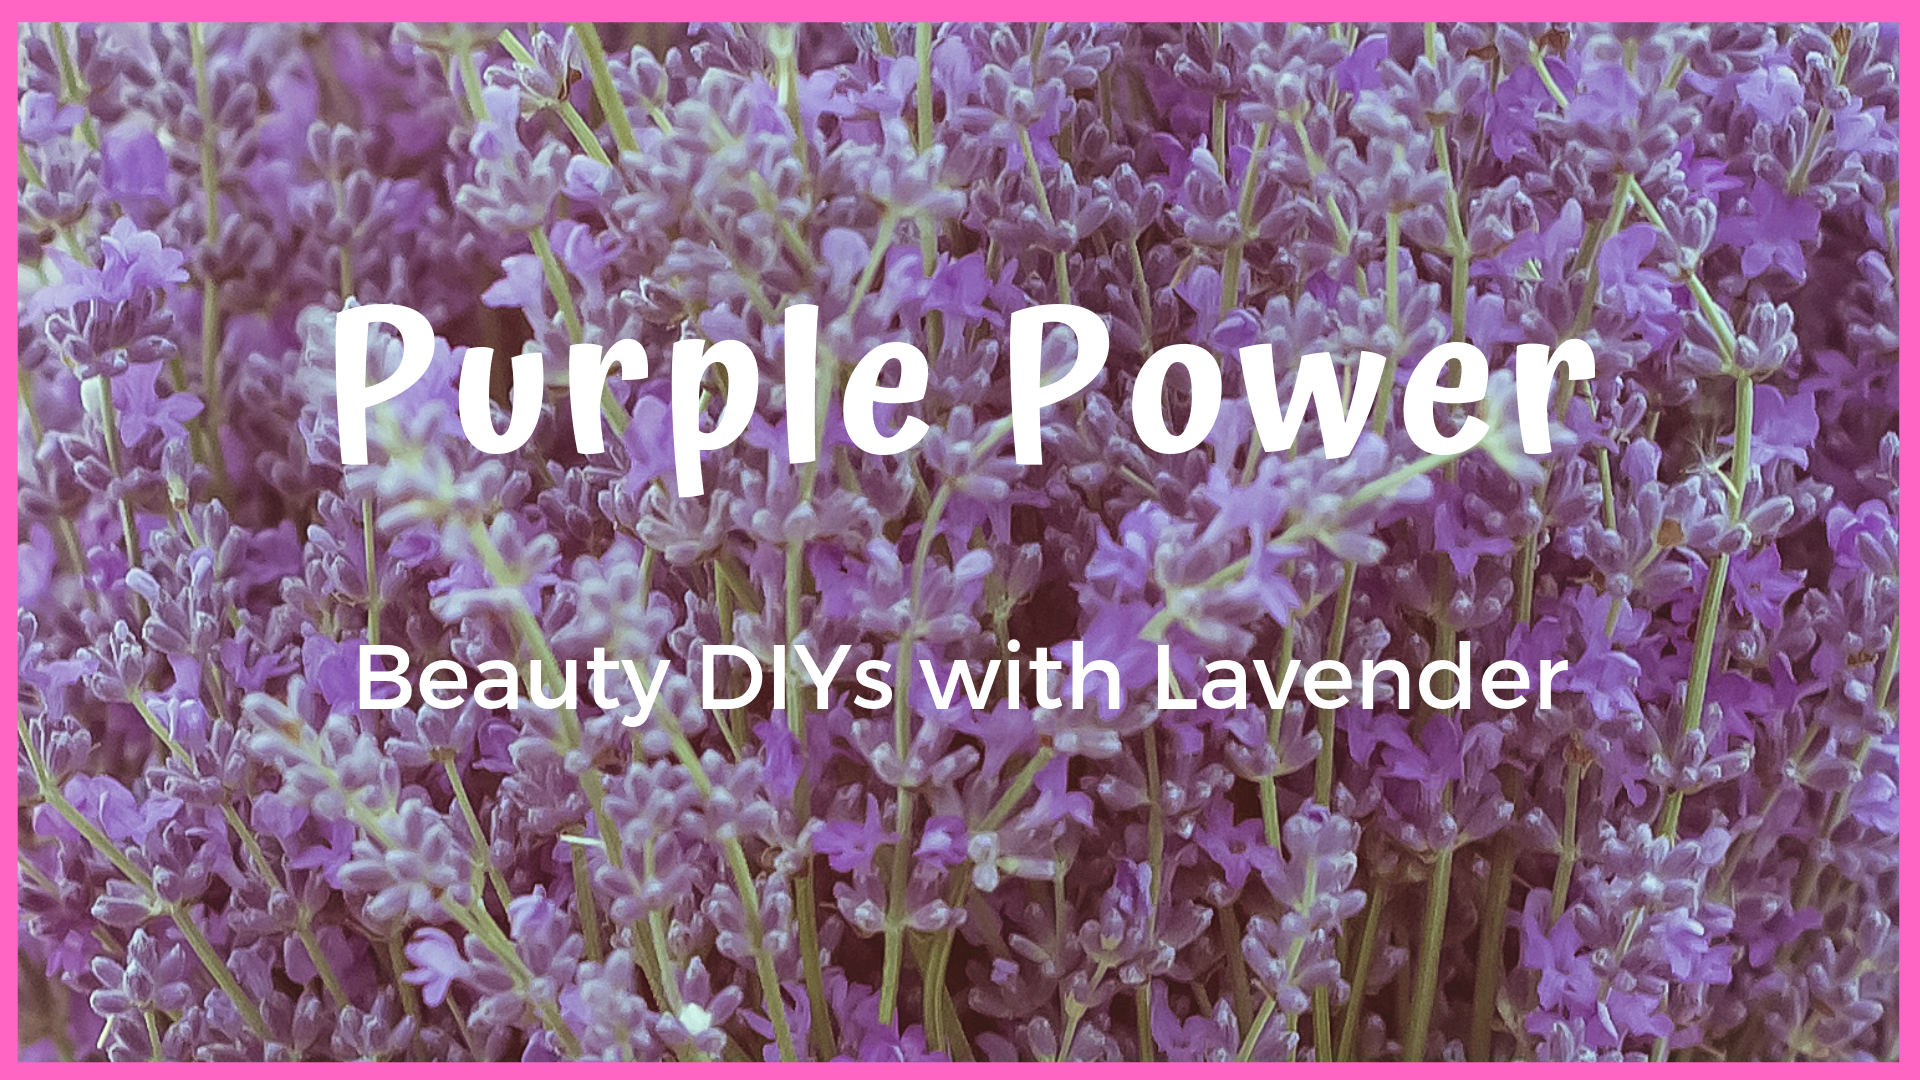 How to Use Lavender Oil for Hair Care & Skin Care